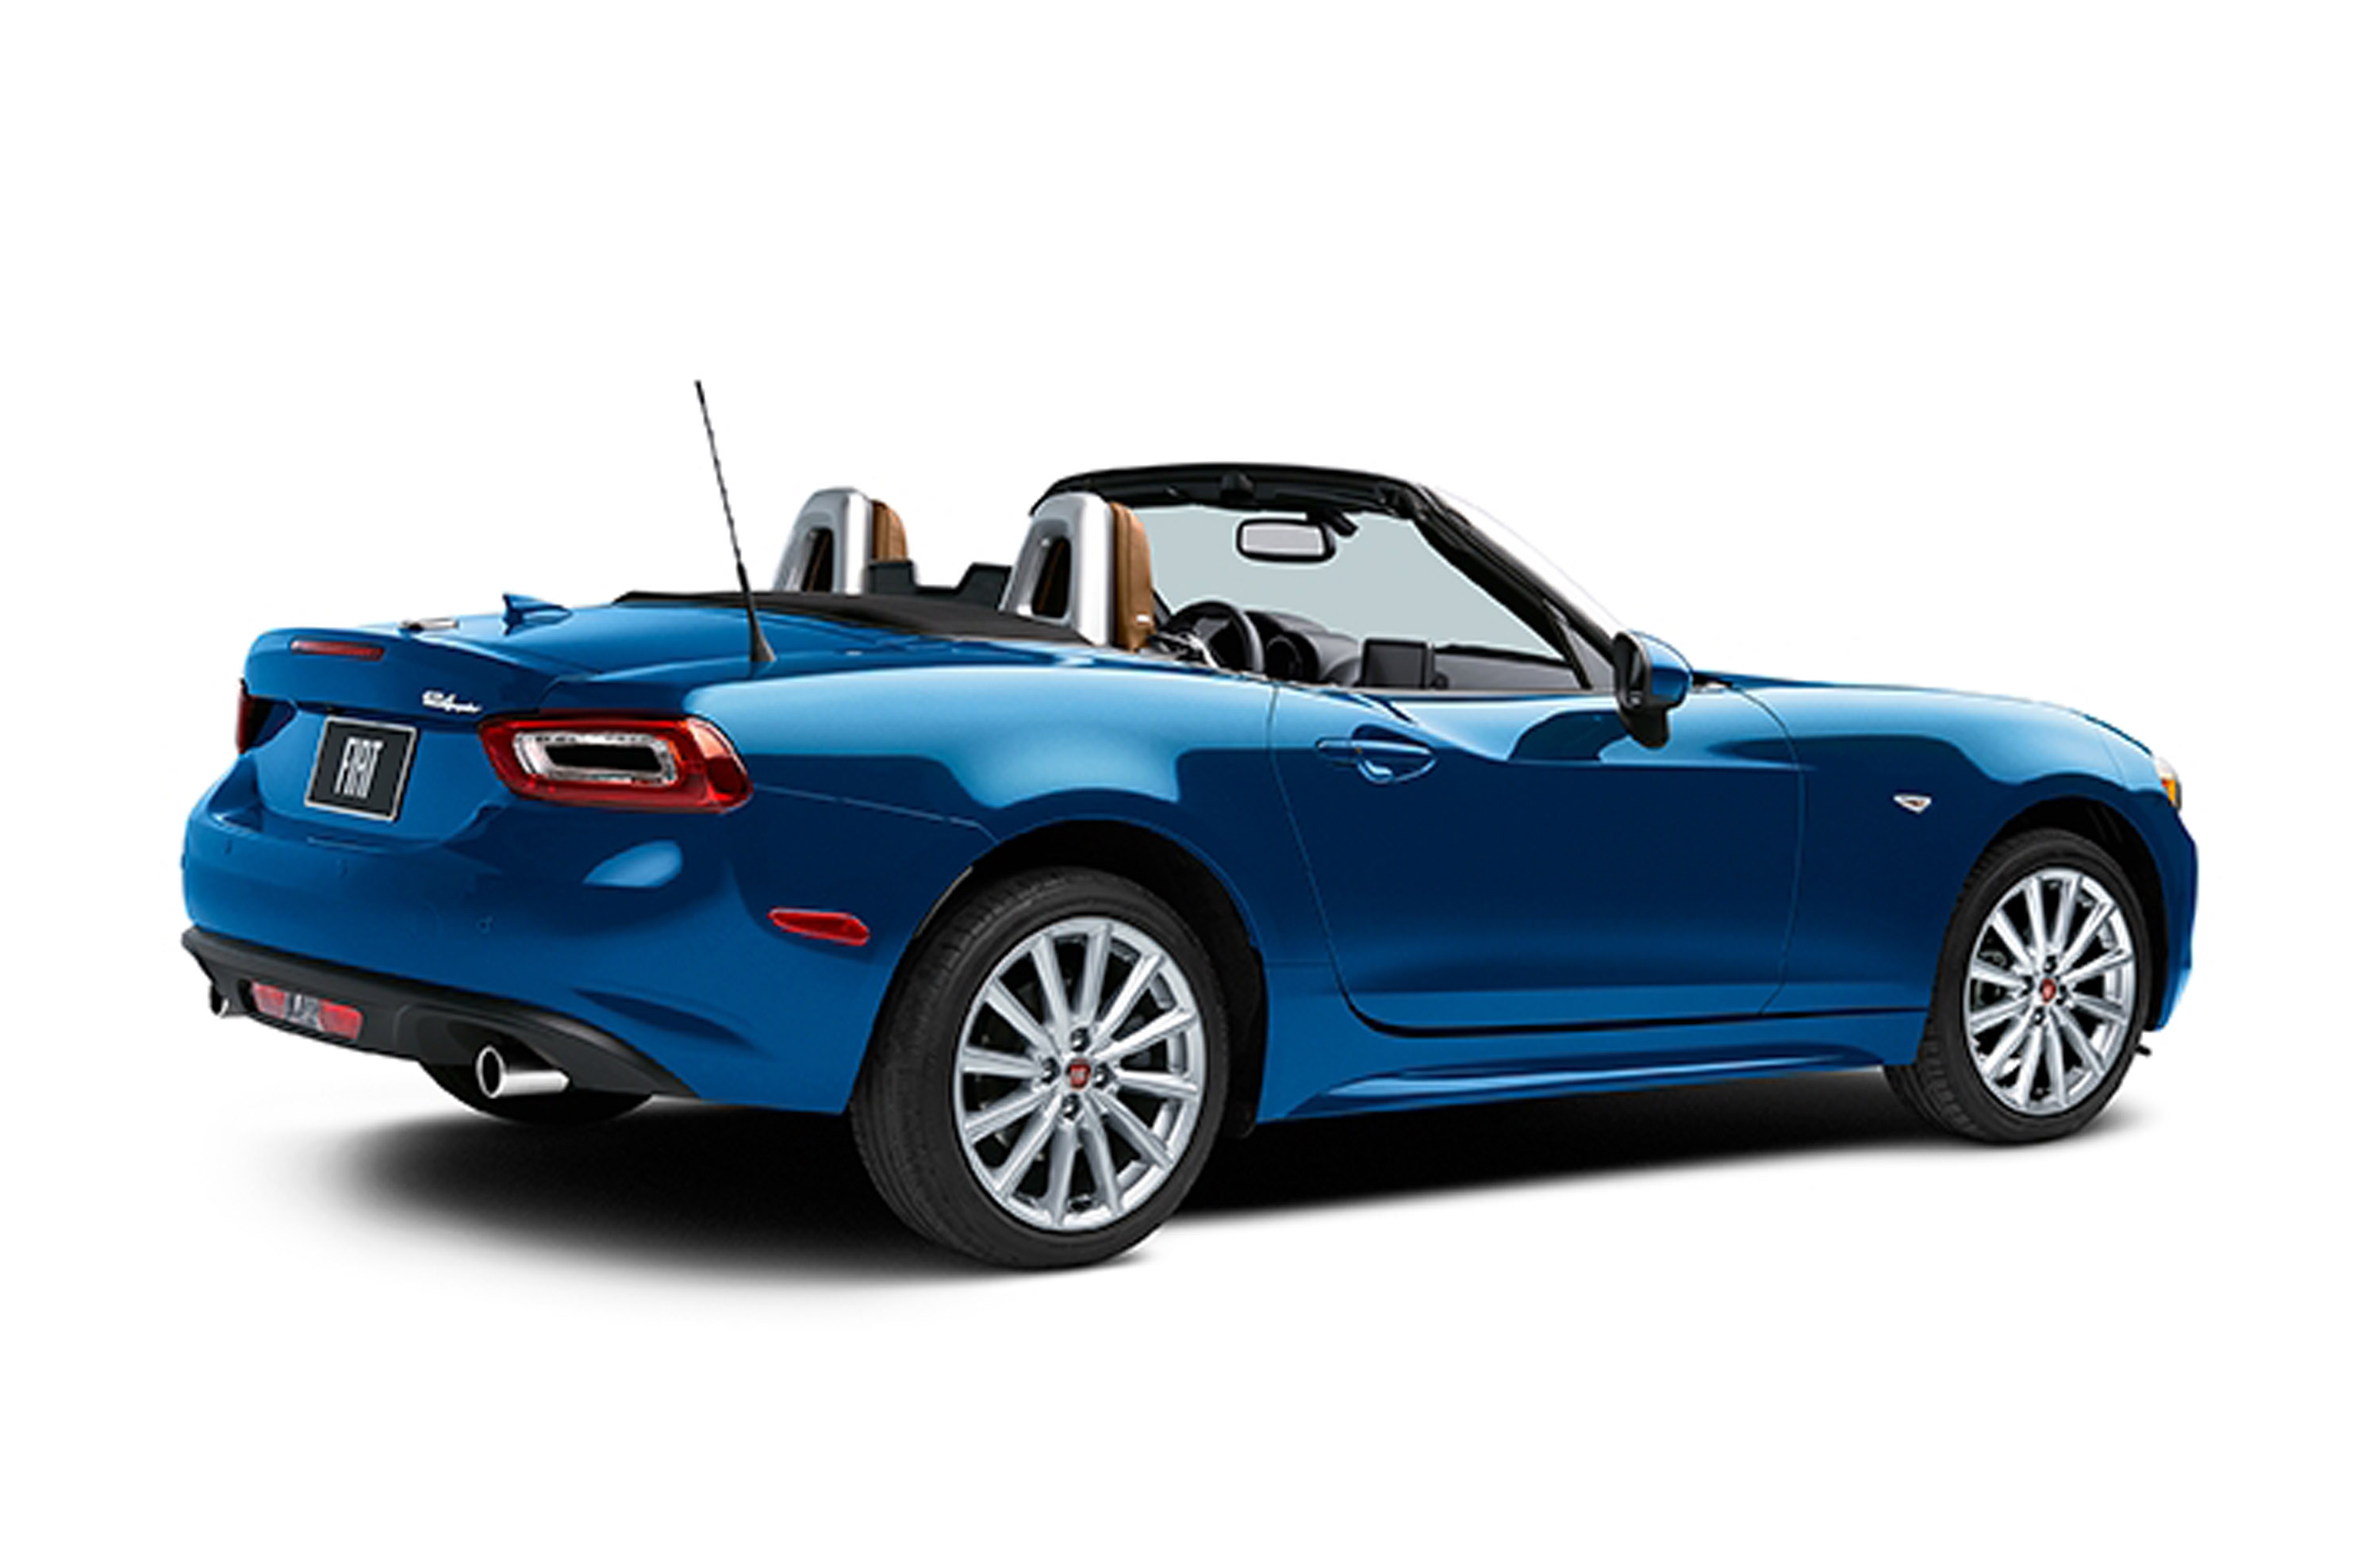 fiat unveils 2017 124 spider model. Black Bedroom Furniture Sets. Home Design Ideas